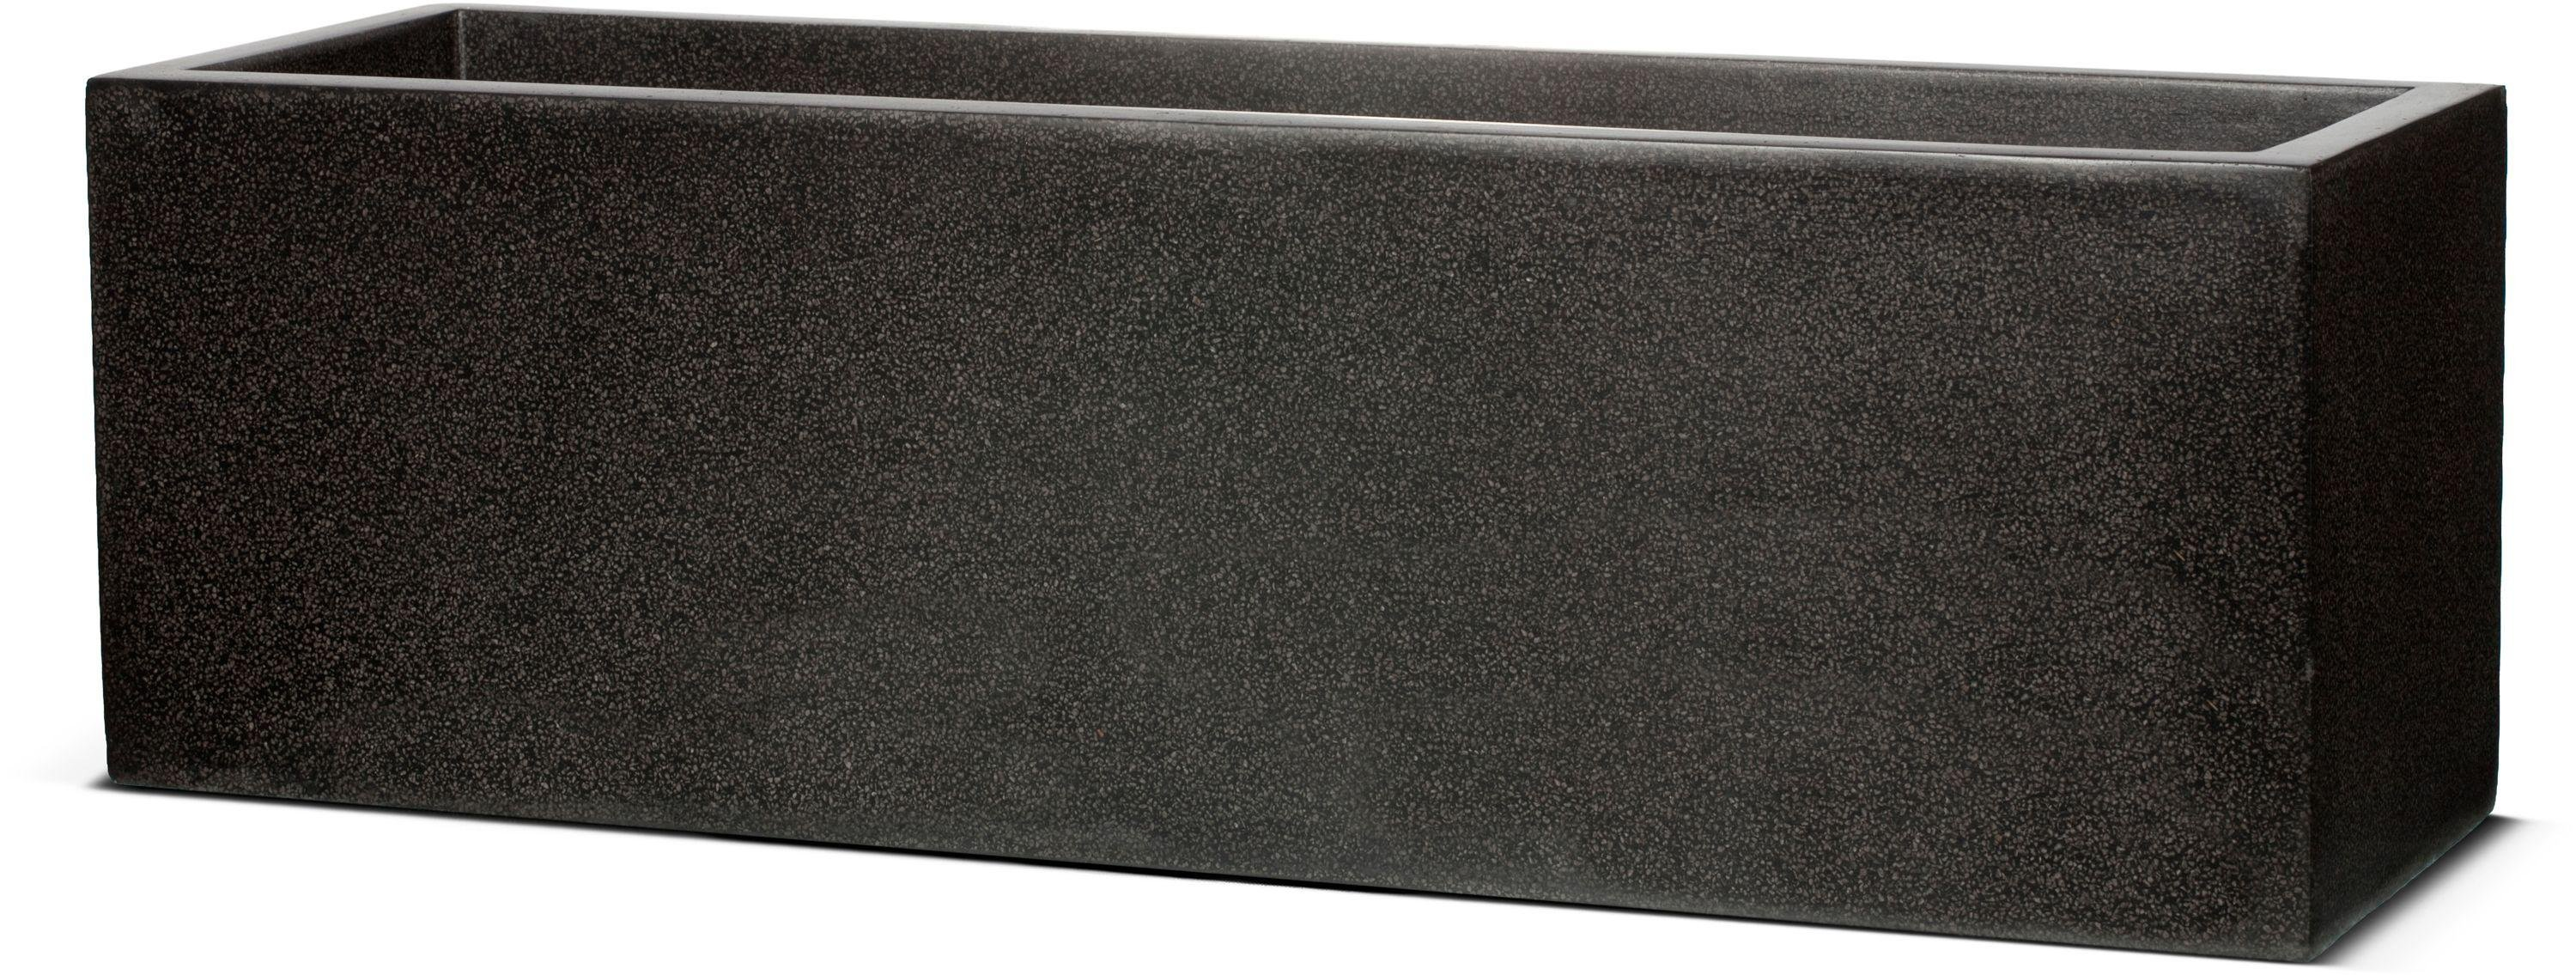 Image of Capi Lux Low Rectangular Planter - 100 x 40cm.